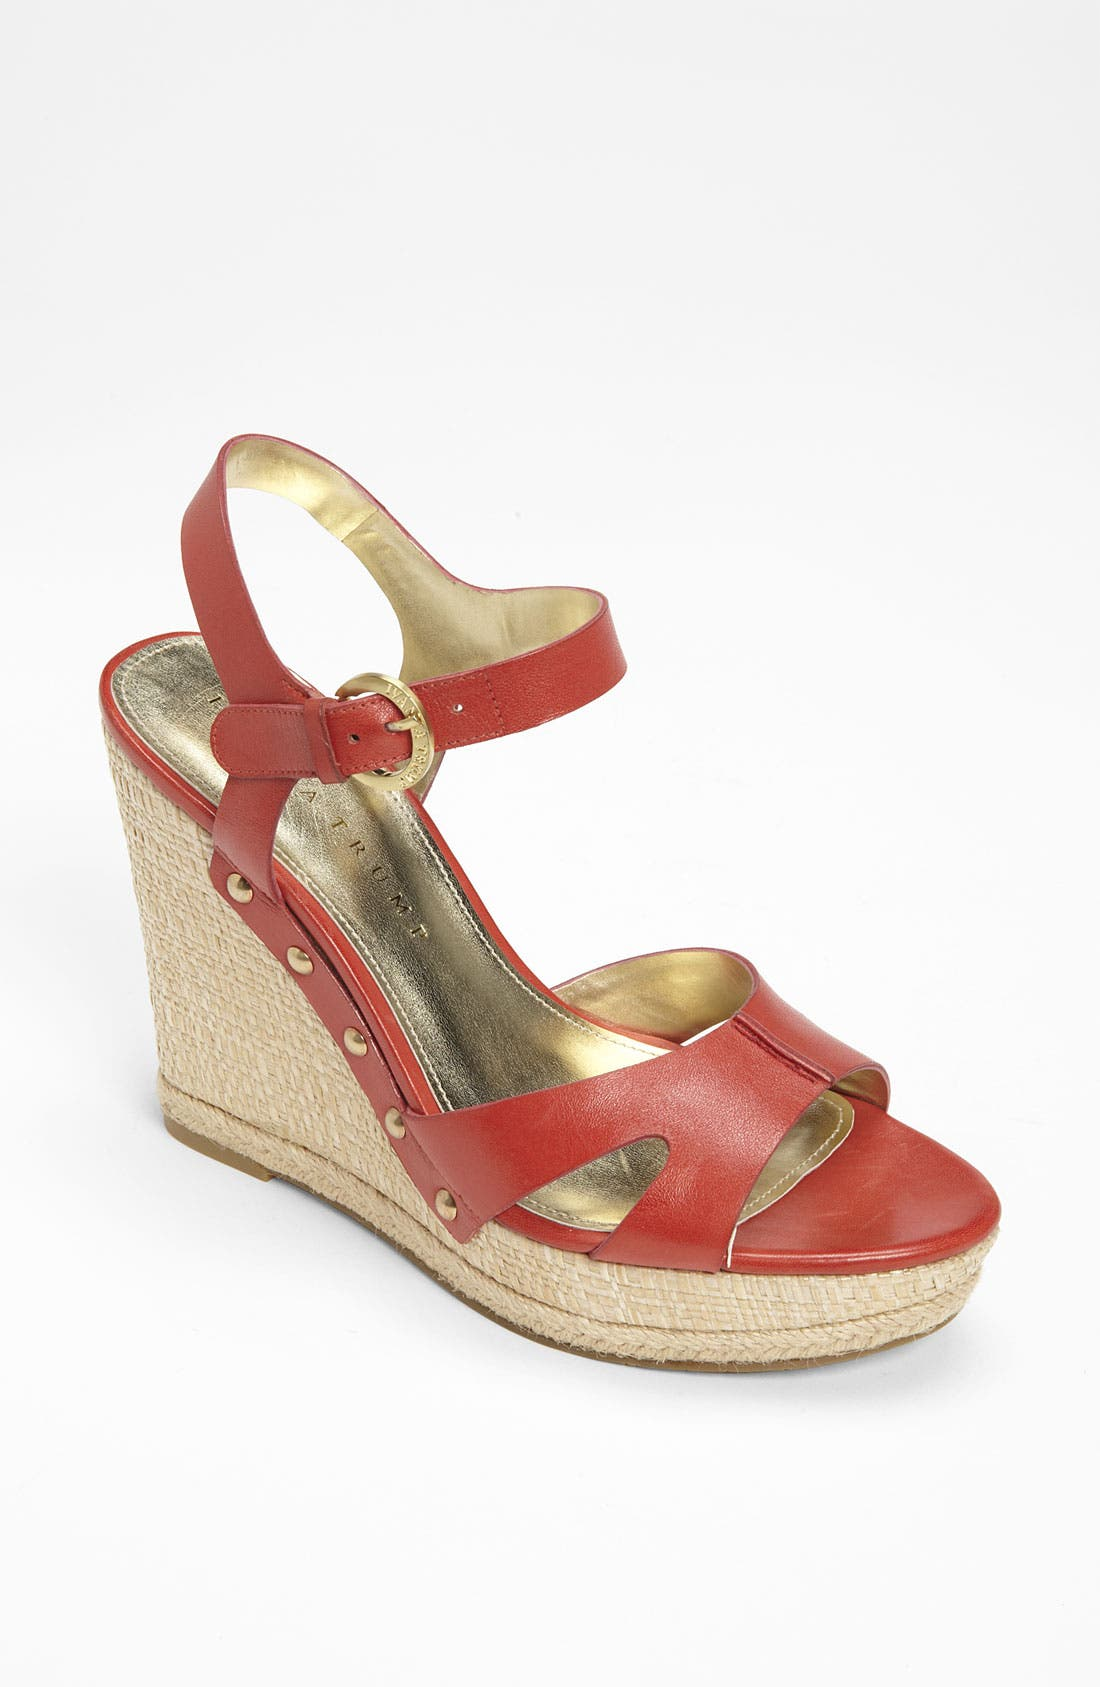 Alternate Image 1 Selected - Ivanka Trump 'Horatia' Sandal